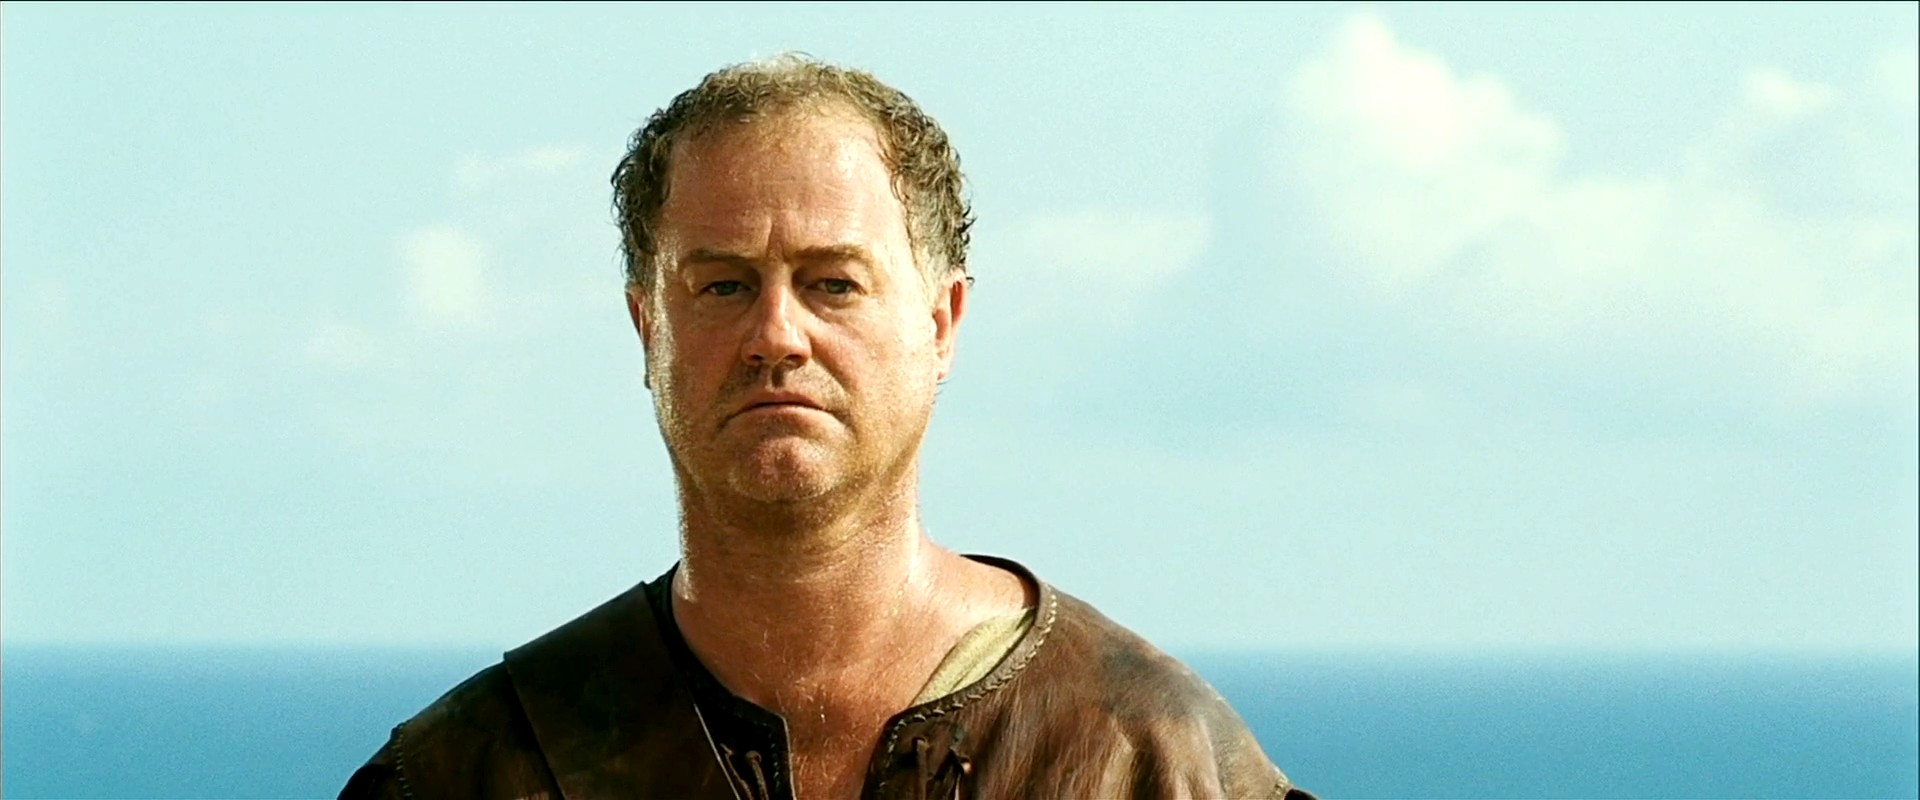 Owen Teale Celebrity Wallpaper HD Wallpaper